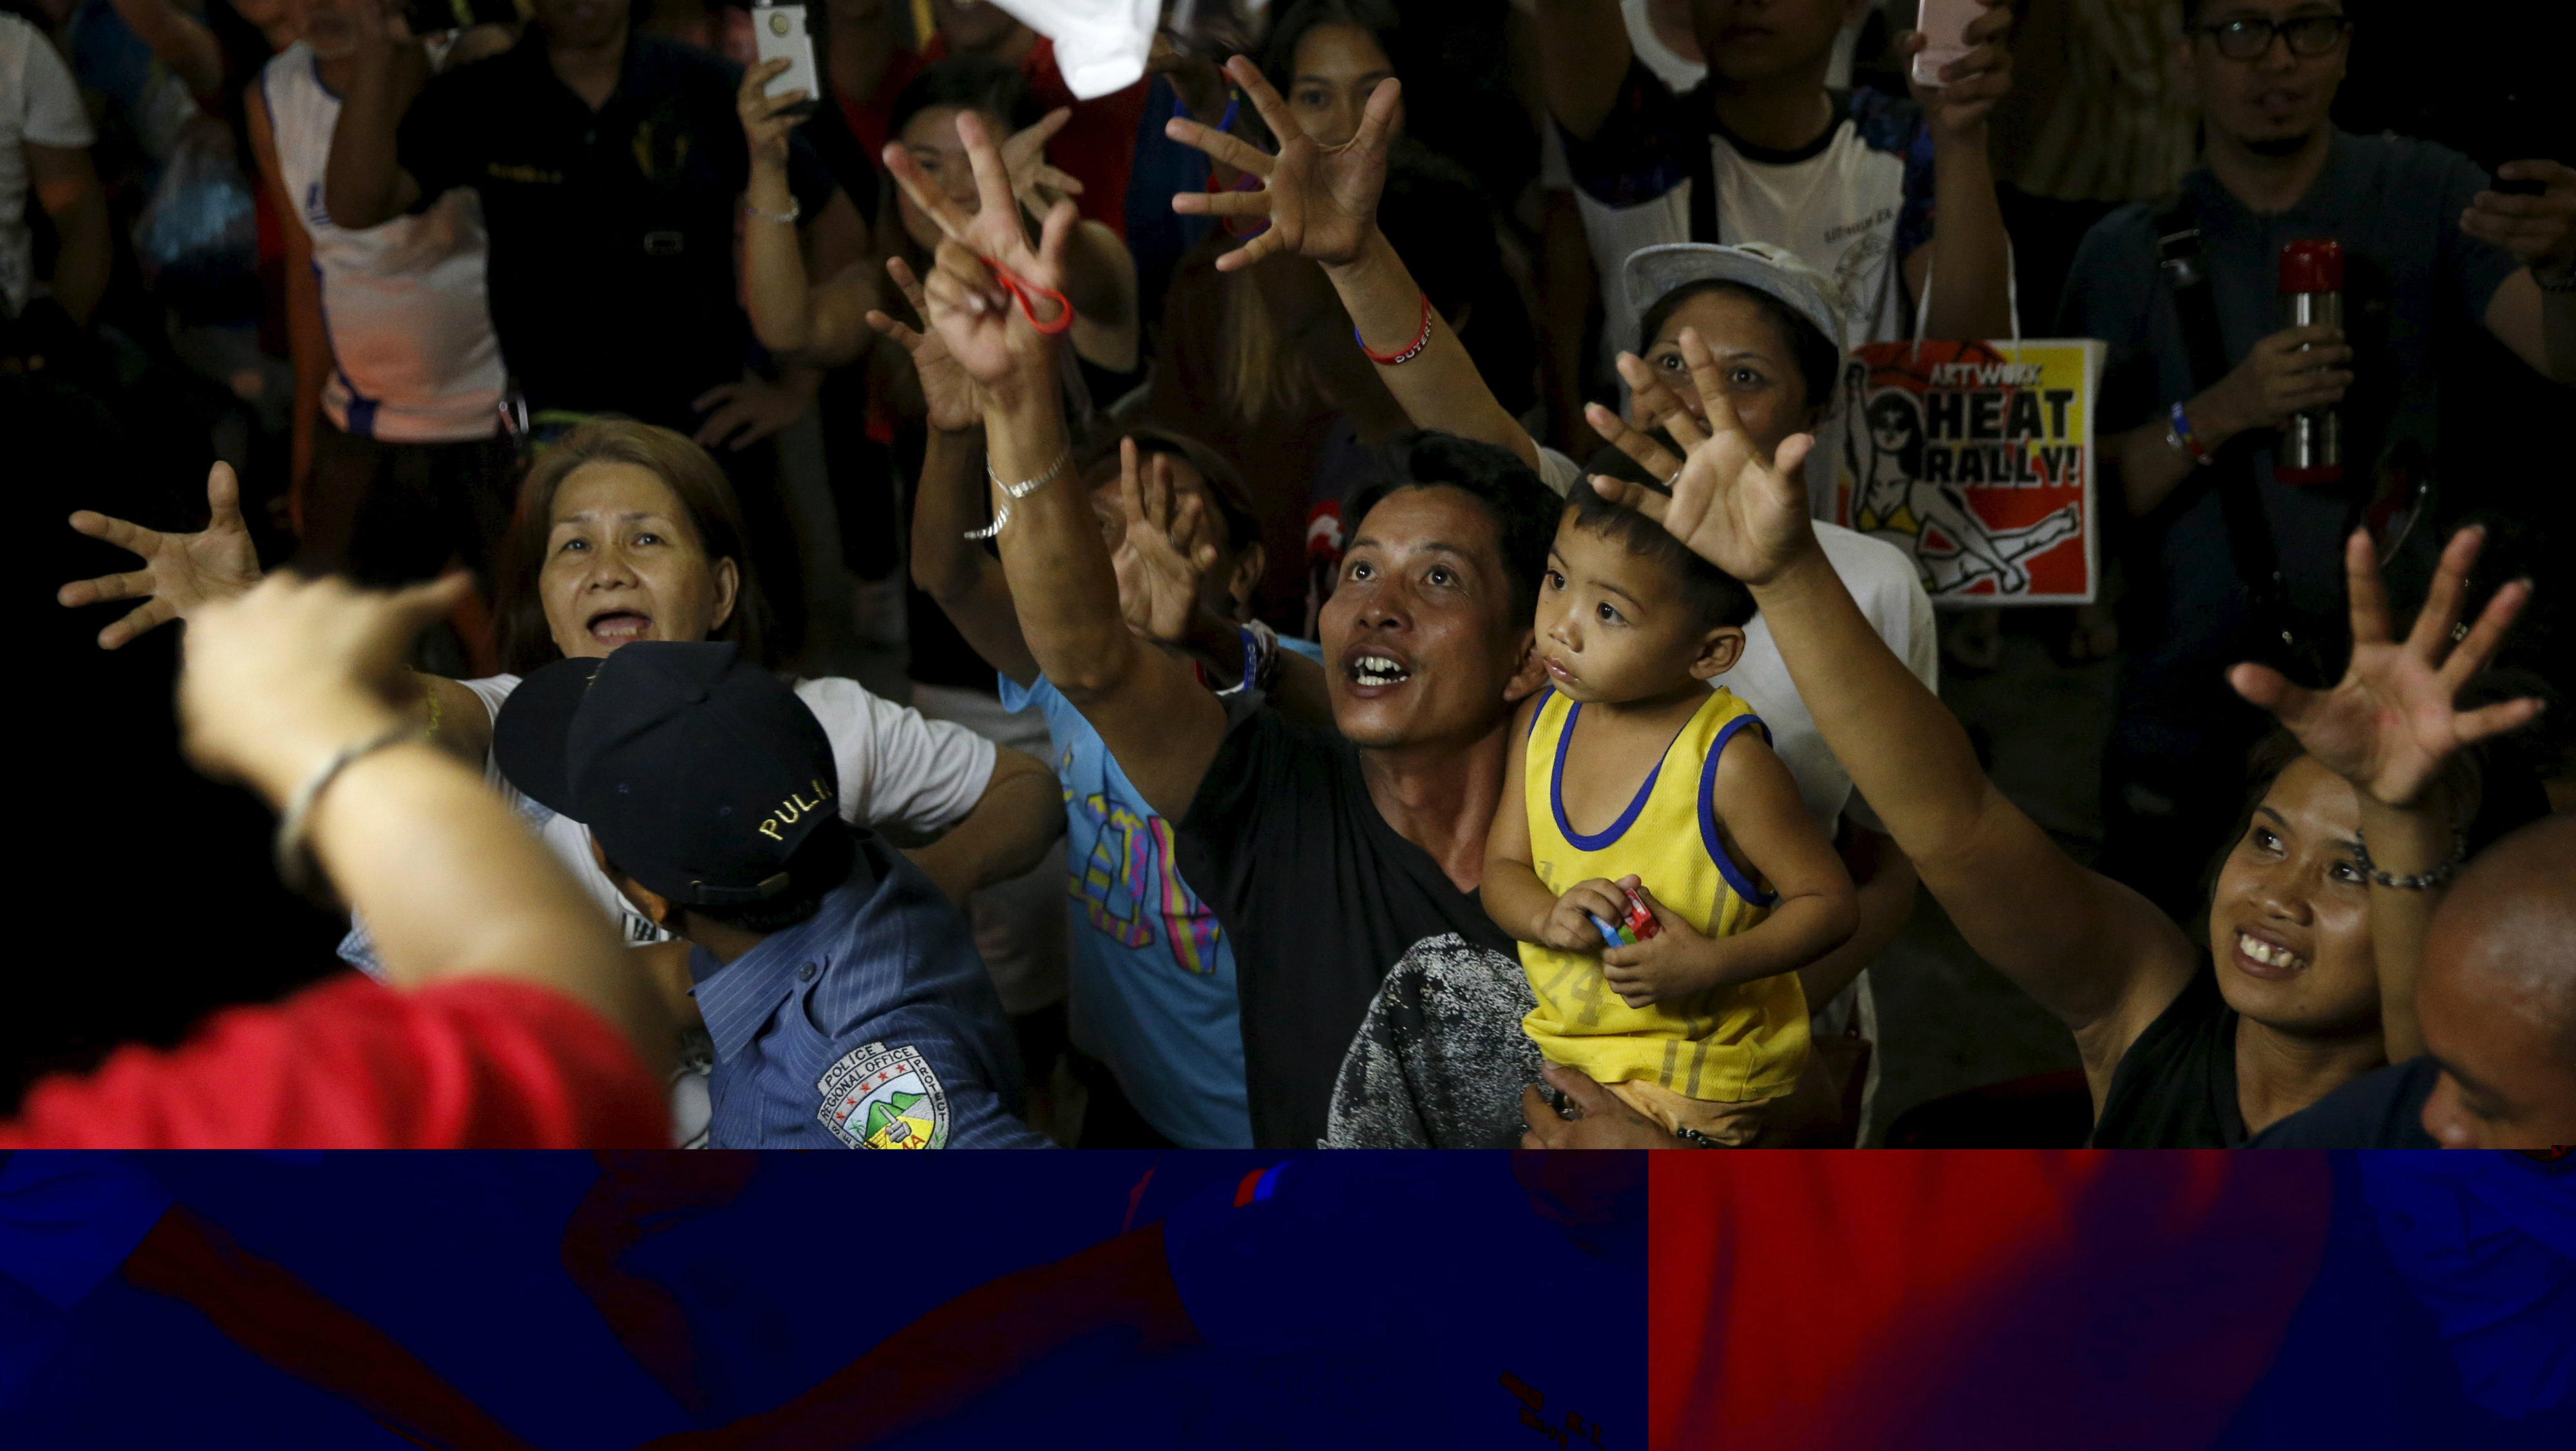 Supporters of presidential candidate Rodrigo Duterte try to catch election souvenirs during an election campaigning for May 2016 national elections in Silang, Cavite southwest of Manila Philippines